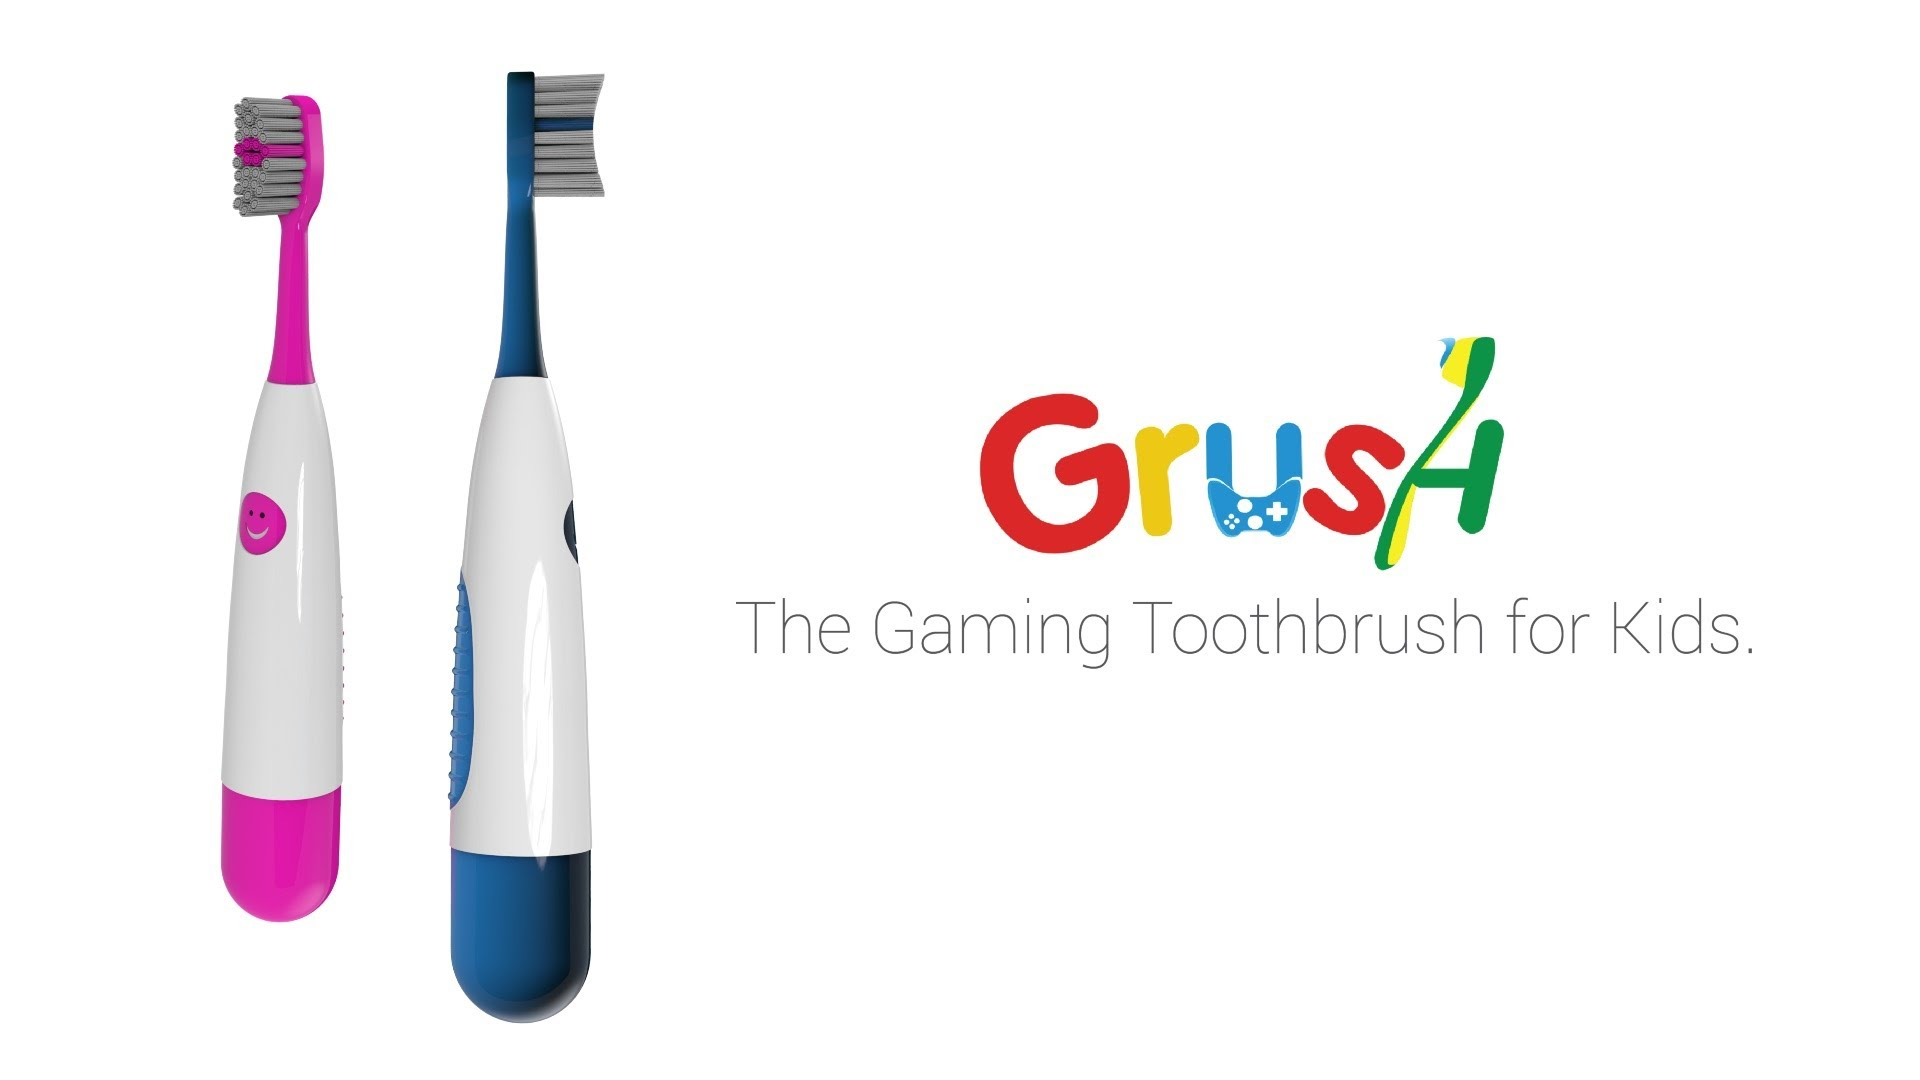 Modojo | Grush: The Gaming Toothbrush Uses Mobile Games to Make Kids Want to Brush